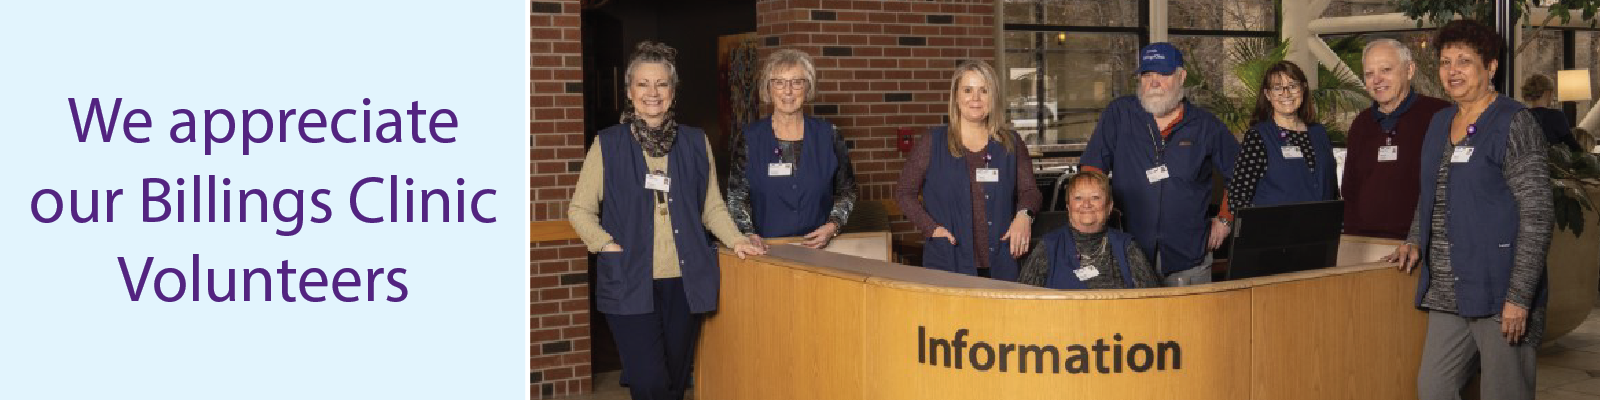 Billings Clinic Volunteers